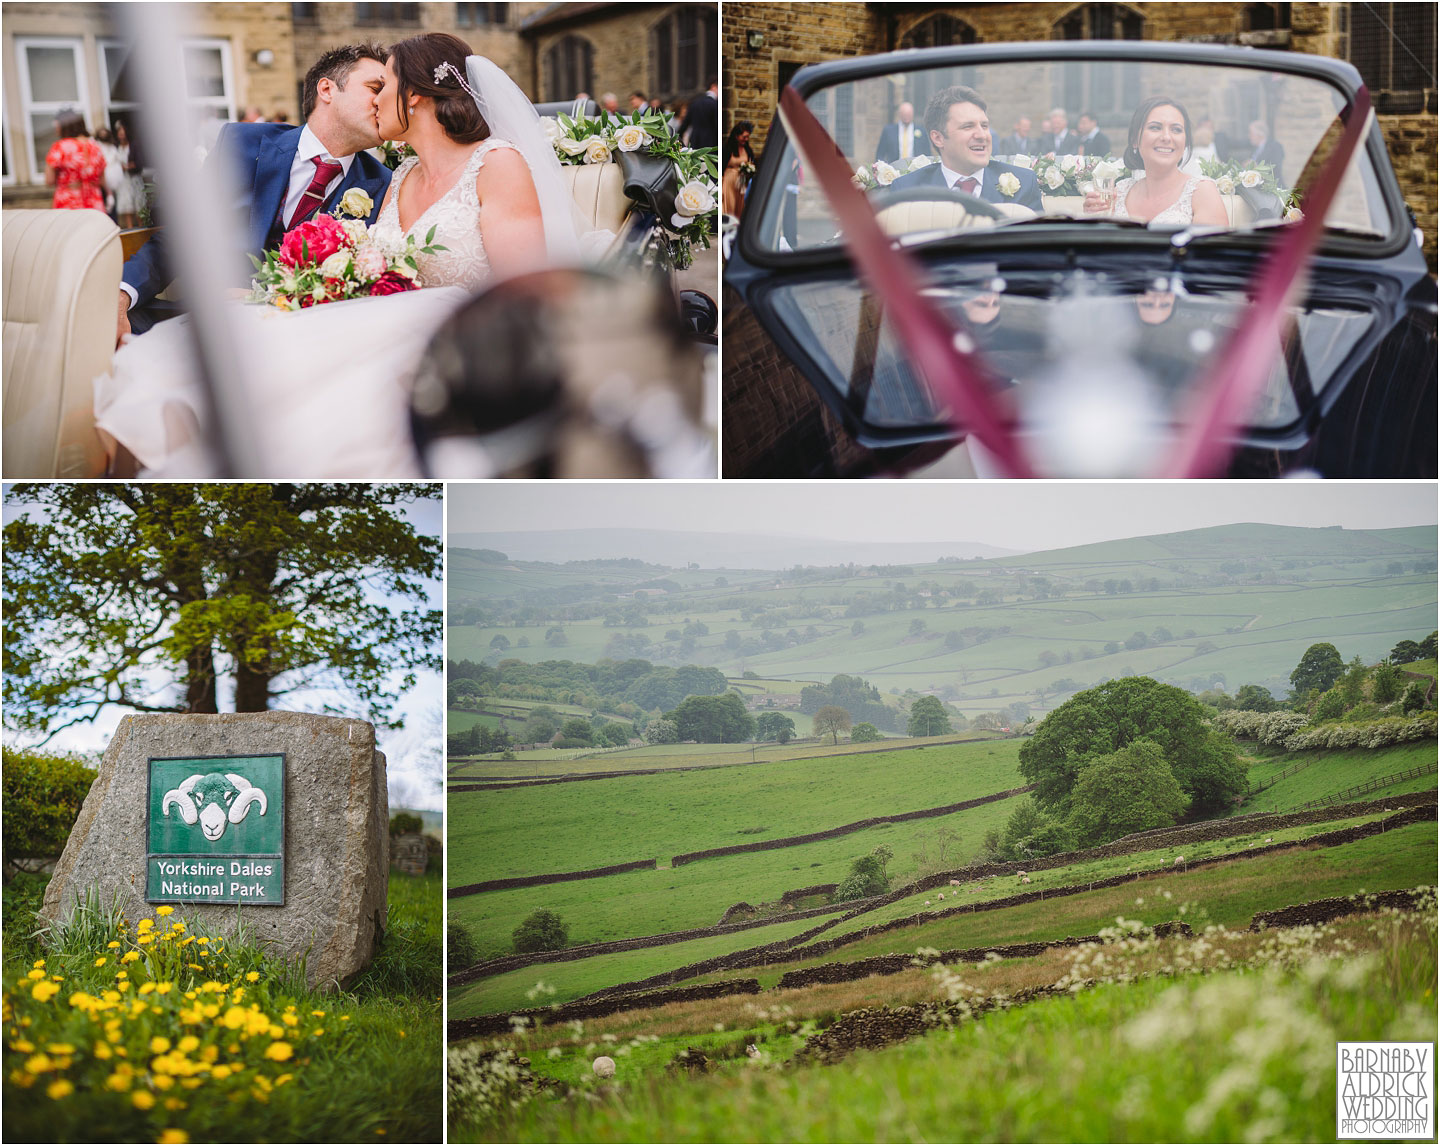 Yorkshire Dales Wedding Photography, Priests House Barden Tower wedding, Priests House Yorkshire photos, Priests House Barden Tower Wedding Photography, Priests House Skipton Wedding Photographer, Yorkshire Dales Wedding, Yorkshire Wedding Photographer, Yorkshire Dales Wedding Venue